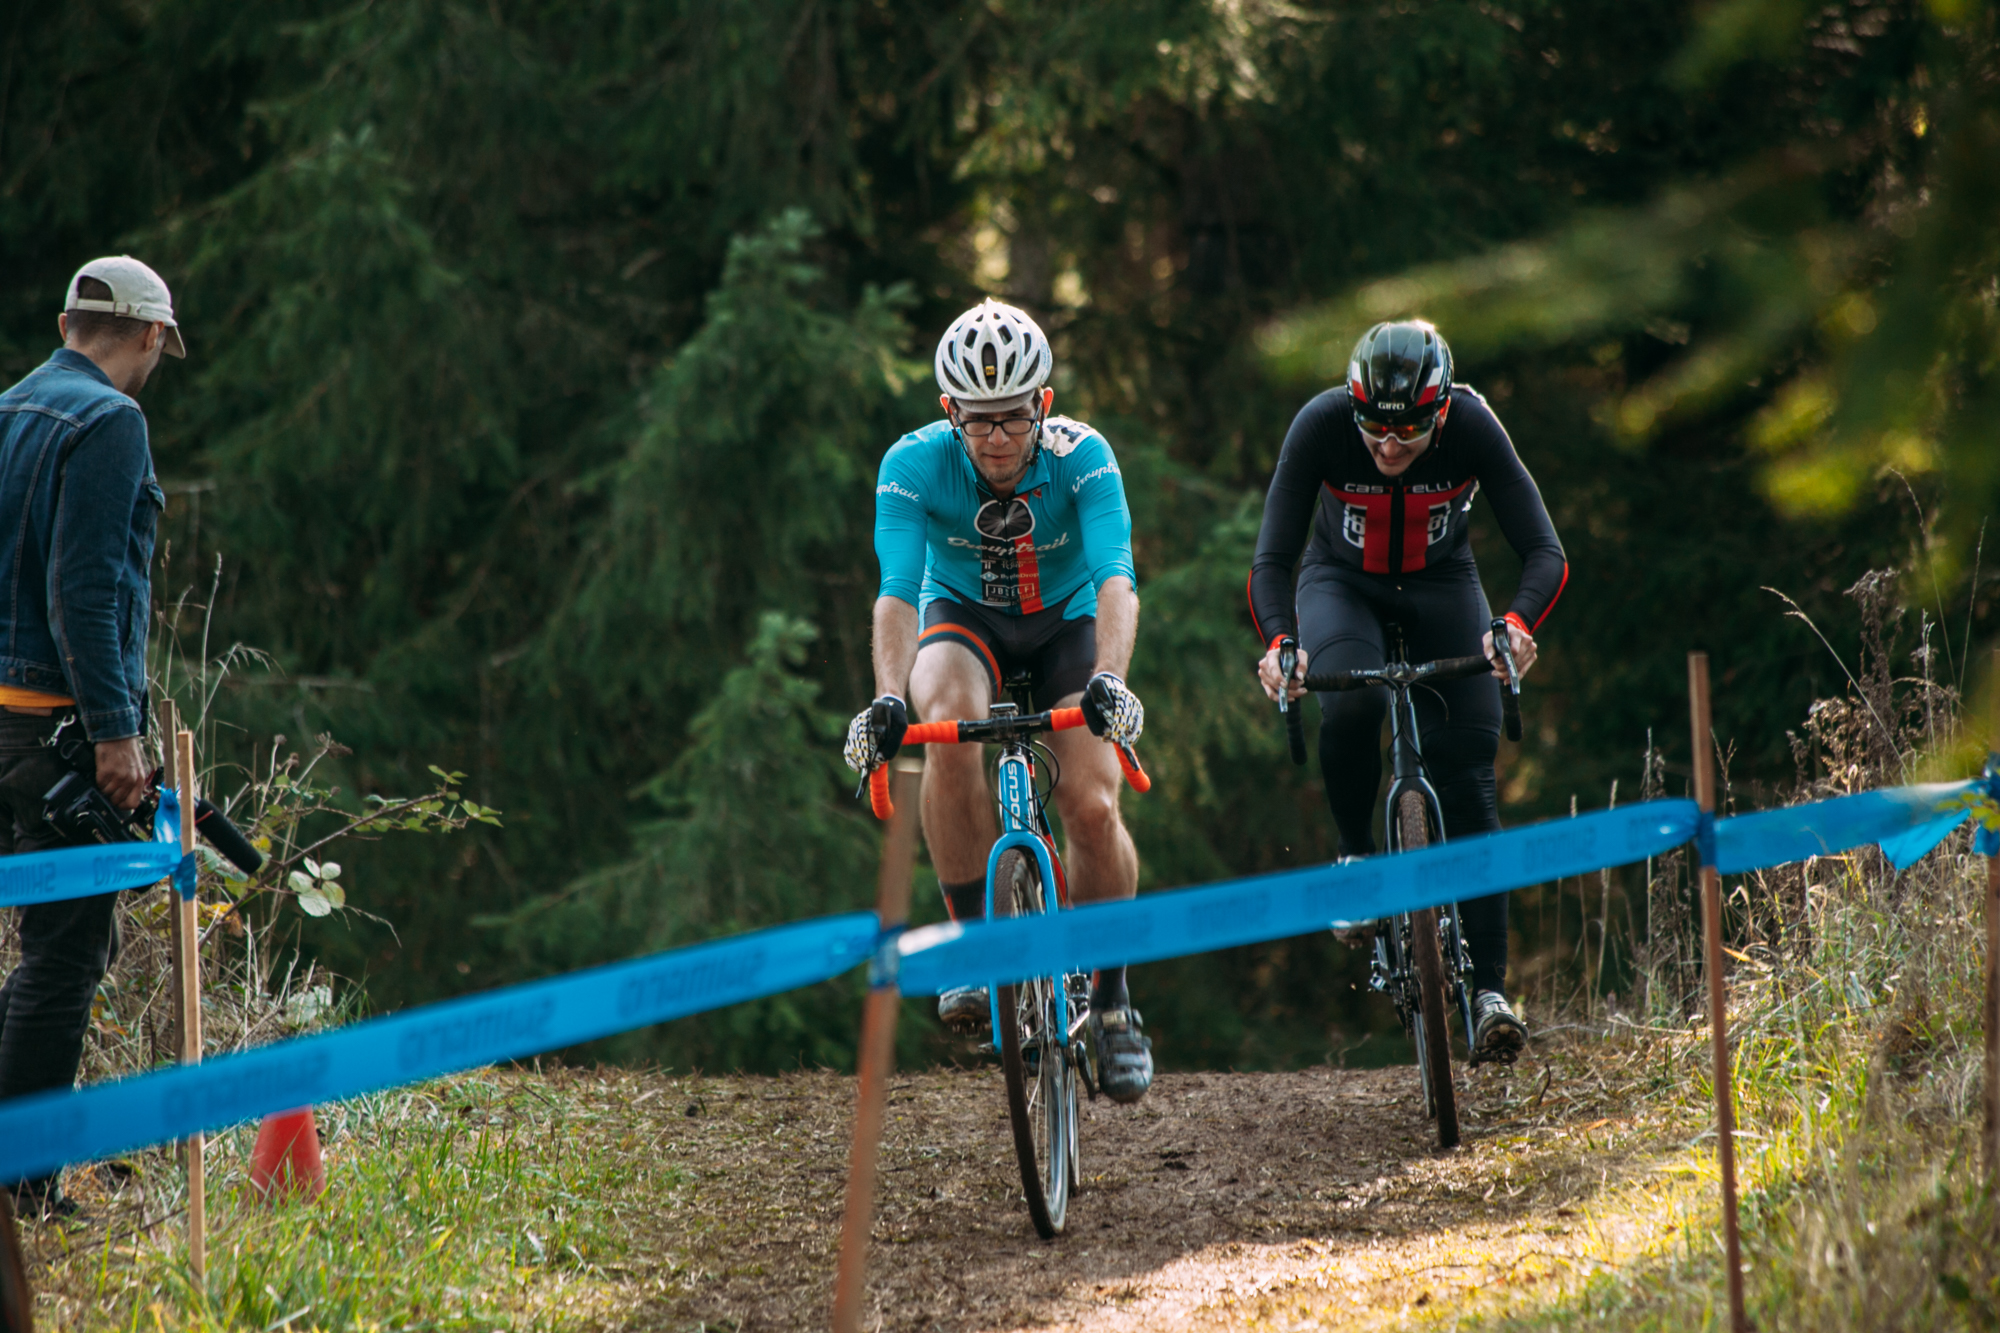 Cyclocross18_CCCX_RainierHS-126-mettlecycling.jpg